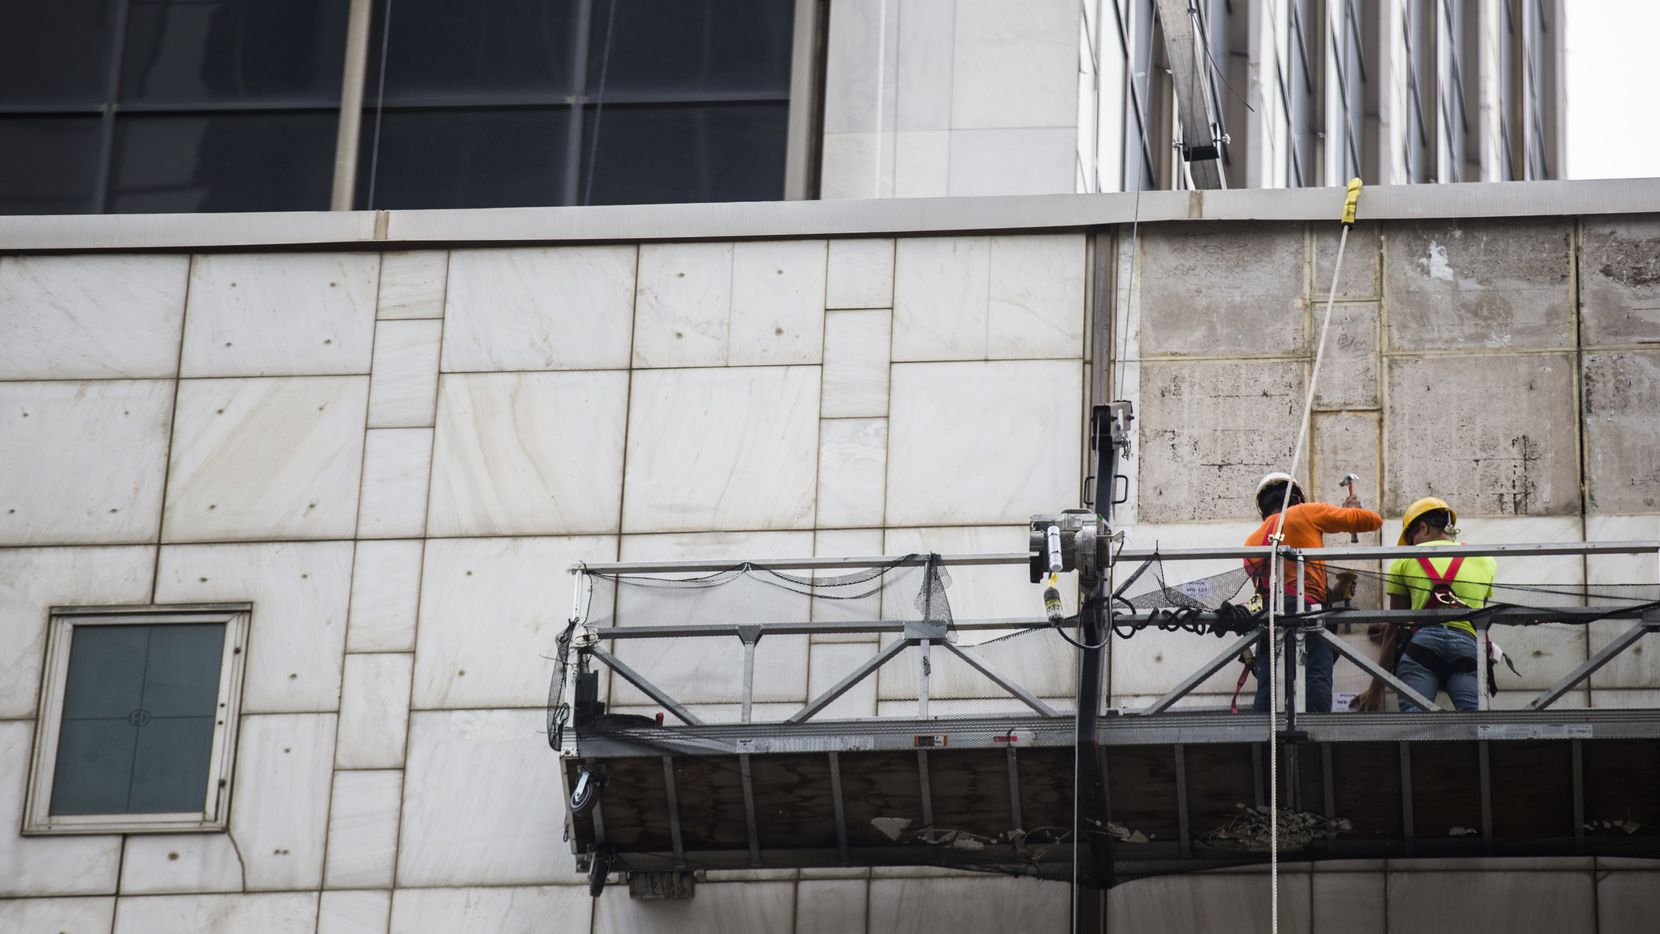 Workers remove panels of marble off of the former First National Bank Tower in downtown Dallas. All of the marble on the skyscraper will be refurbished and replaced.